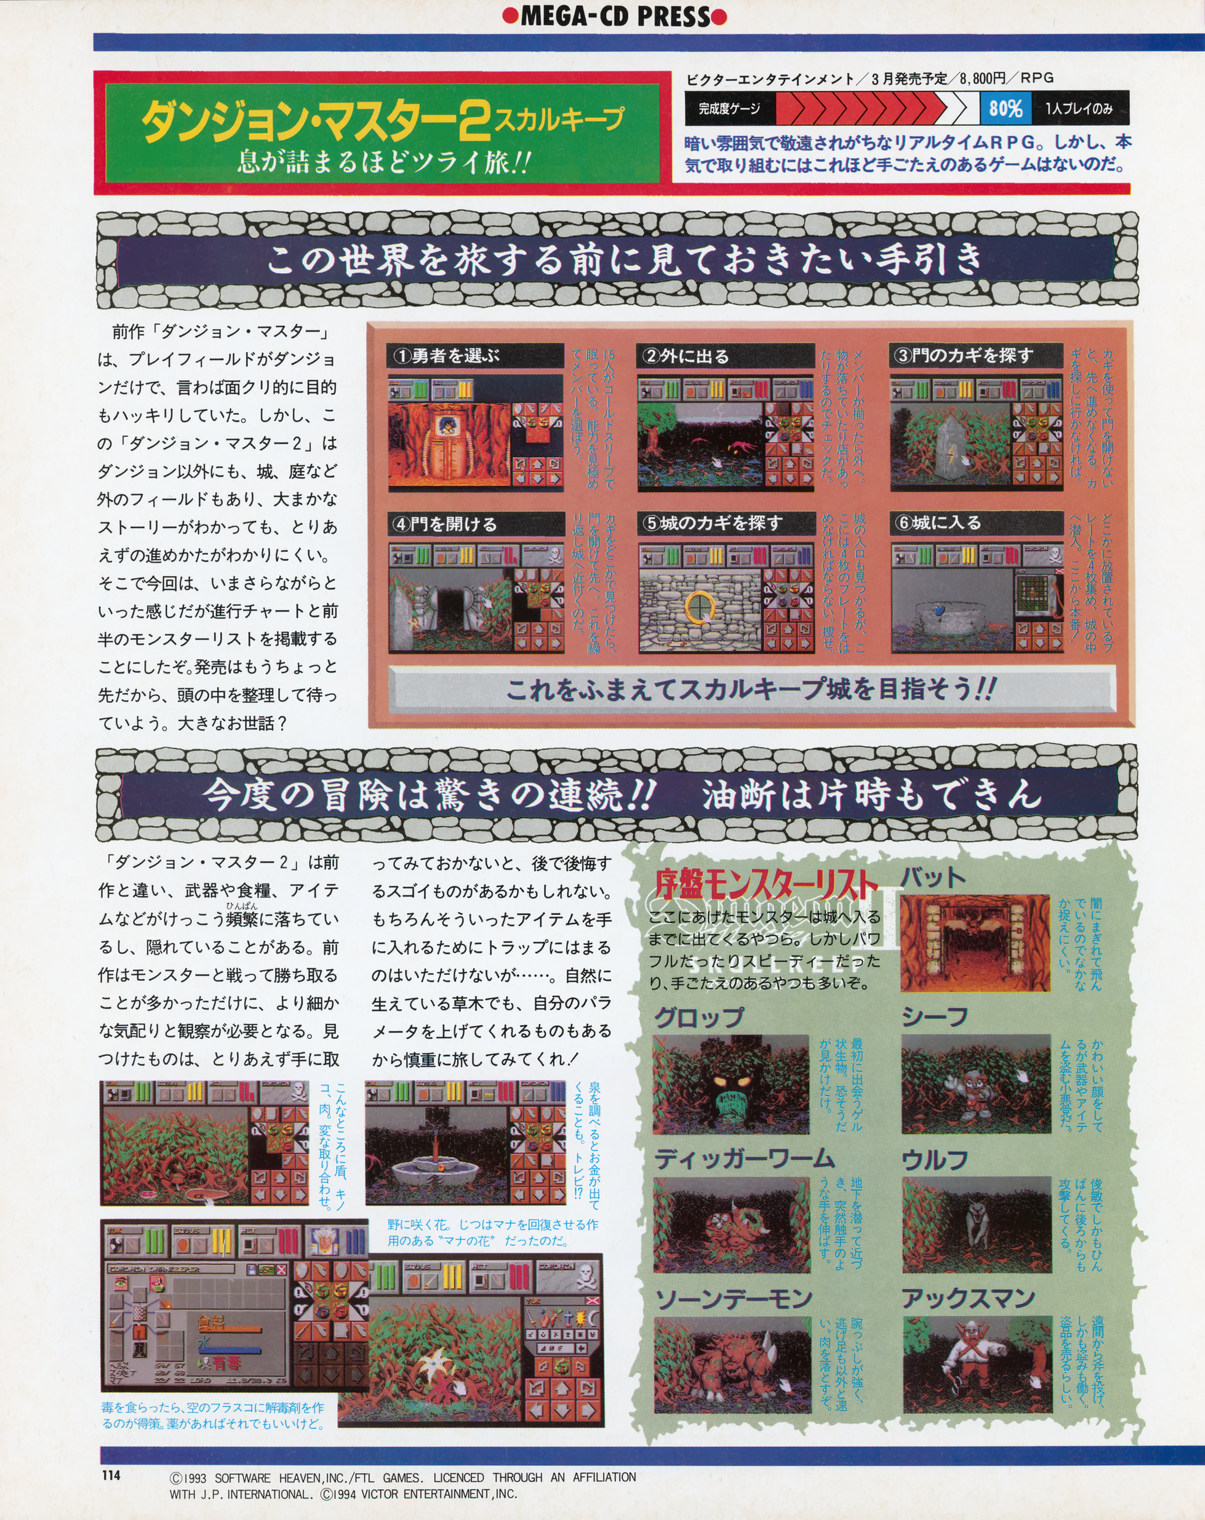 Dungeon Master II for Mega CD Preview published in Japanese magazine 'Beep! MegaDrive', February 1994, Page 114